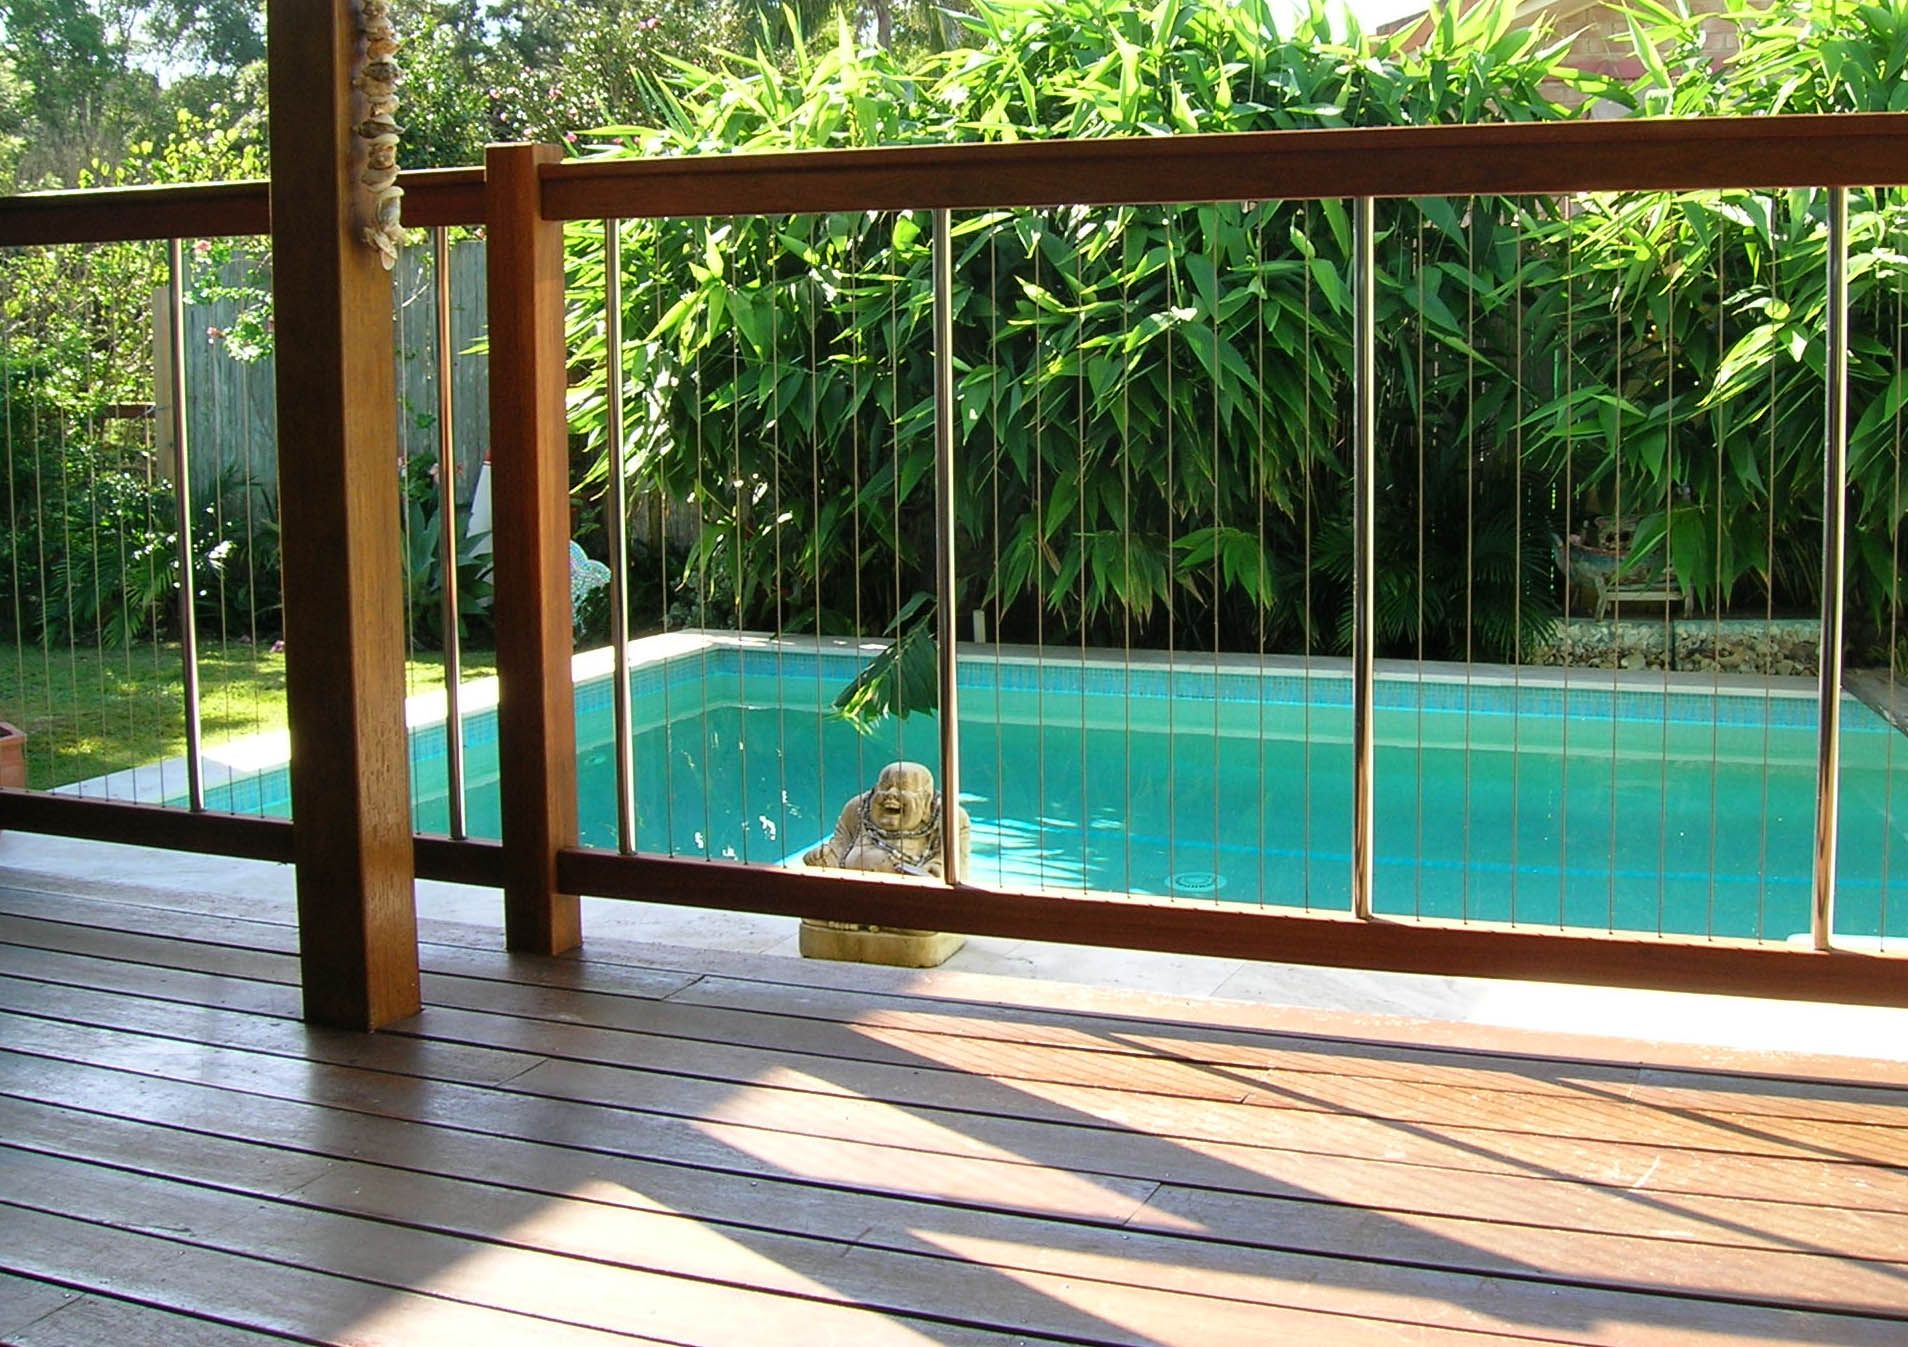 Enchanting Pool Fence Design Ideas With Modern Architecture With Brown Wooden Swimming